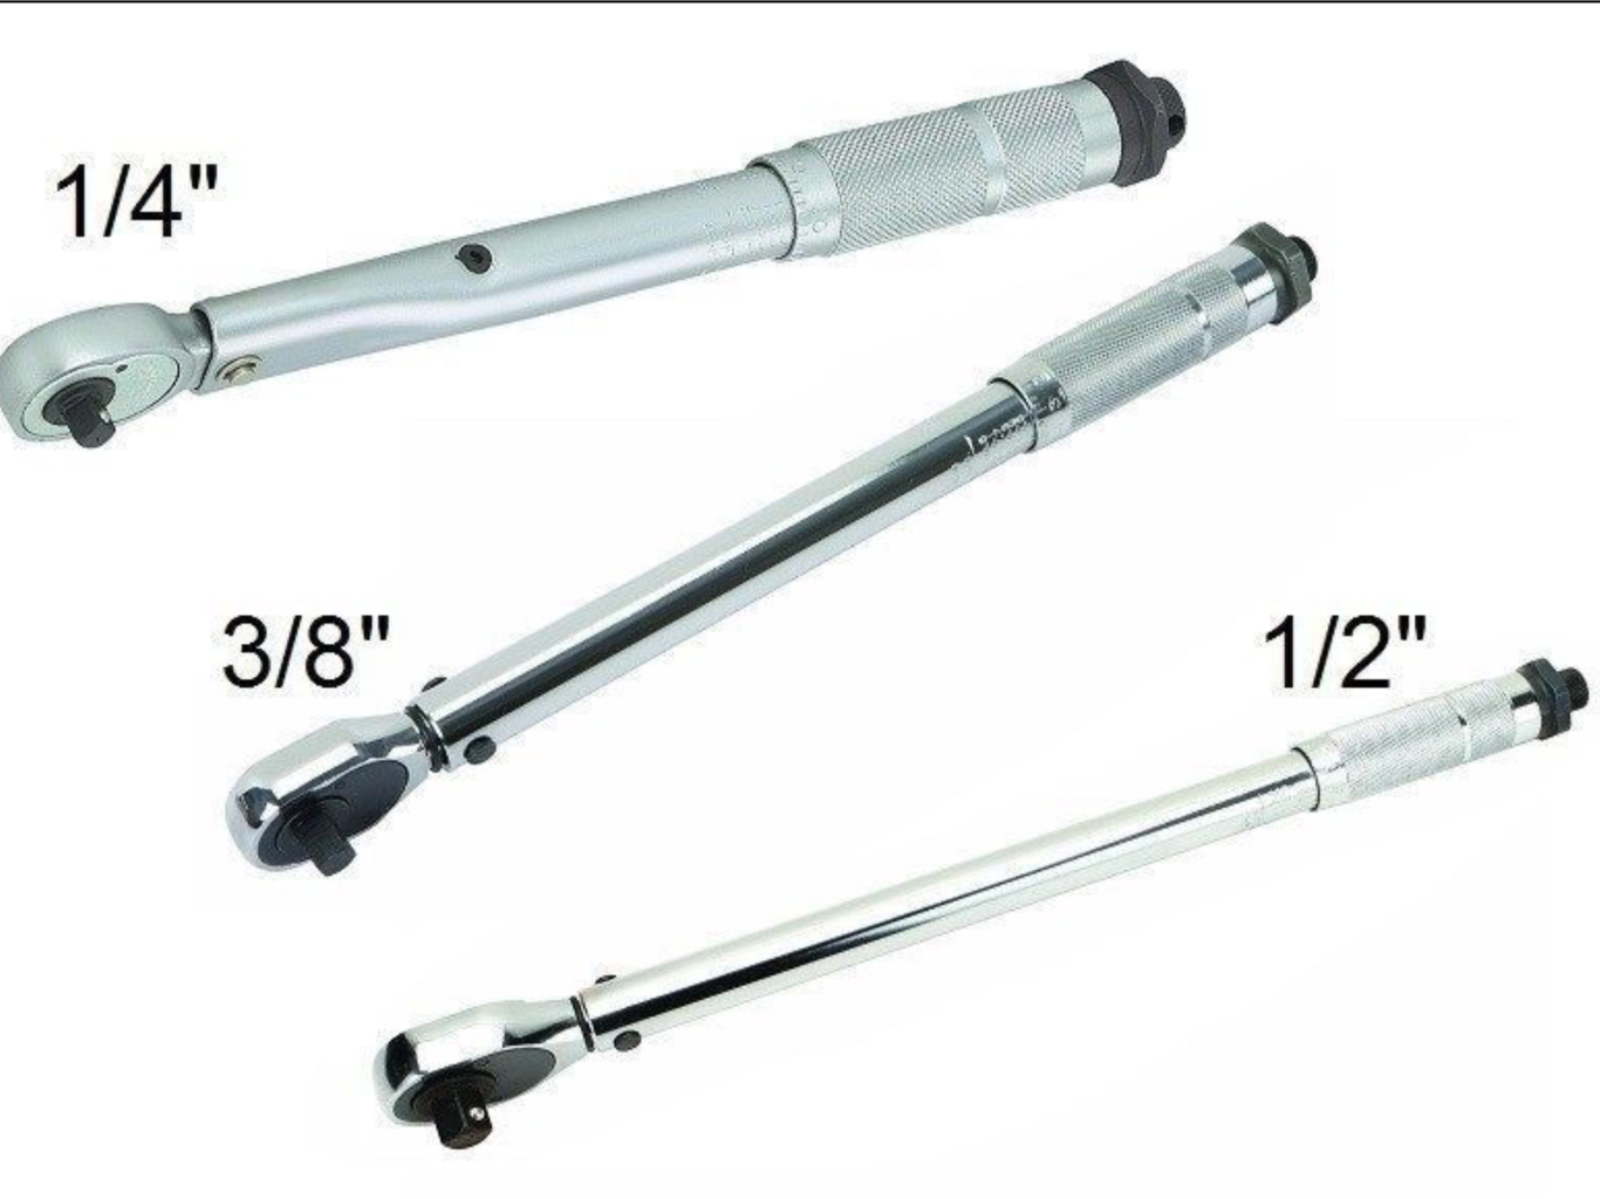 Torque to yield torque wrench delta shower faucet with separate volume and temperature controls